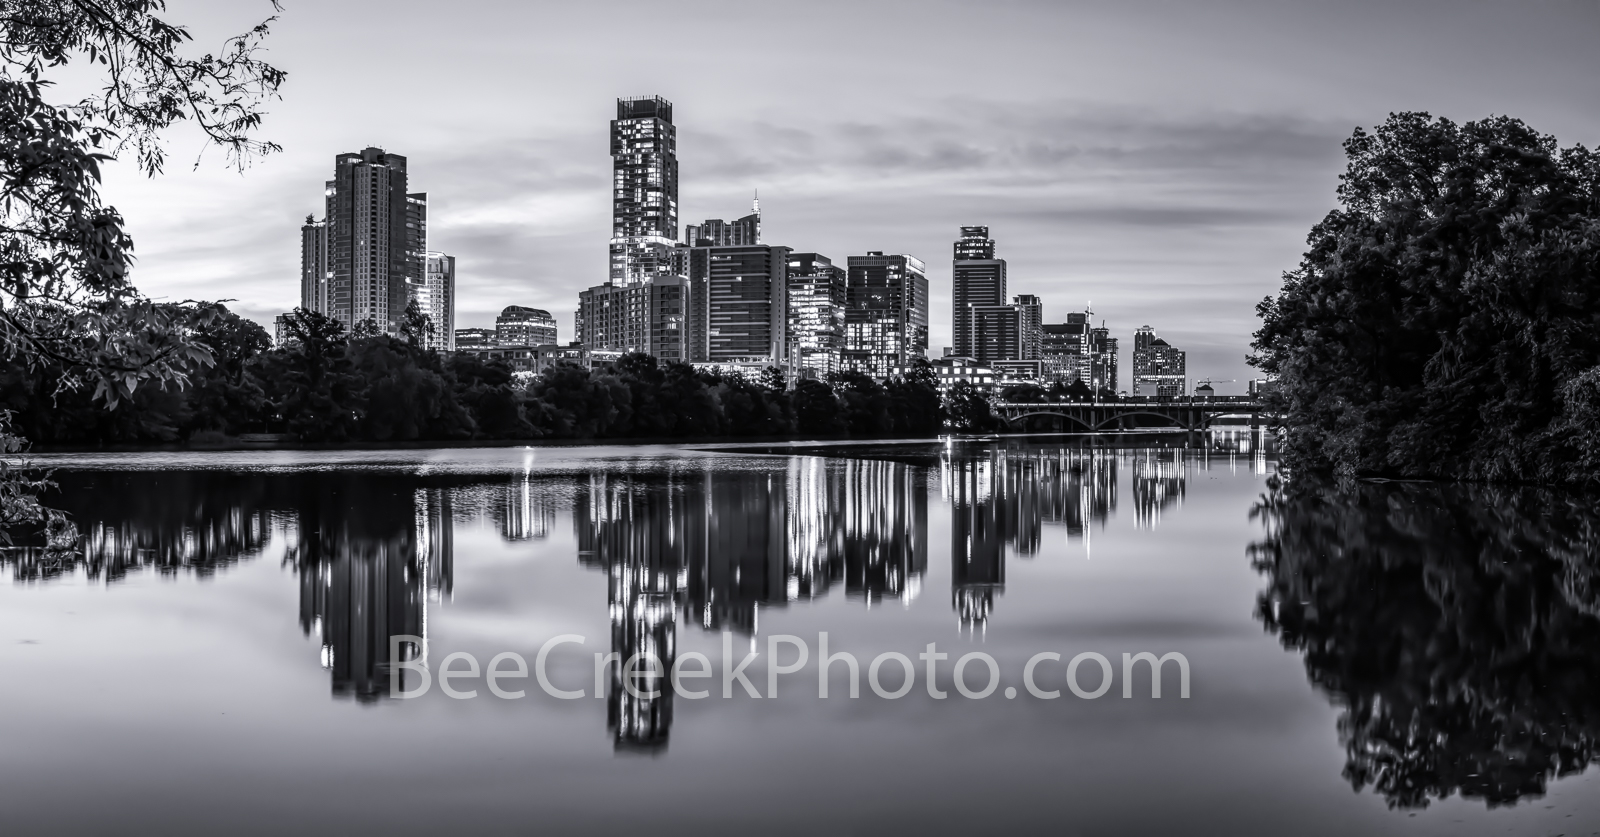 Austin skyline, Skyline of Austin, Lou Neff Point, Lou Neff, black and white, b w , reflections, lady bird lake, downtown, austin, skyline, texas skylines, urban, water, town lake, independent, lamar , photo